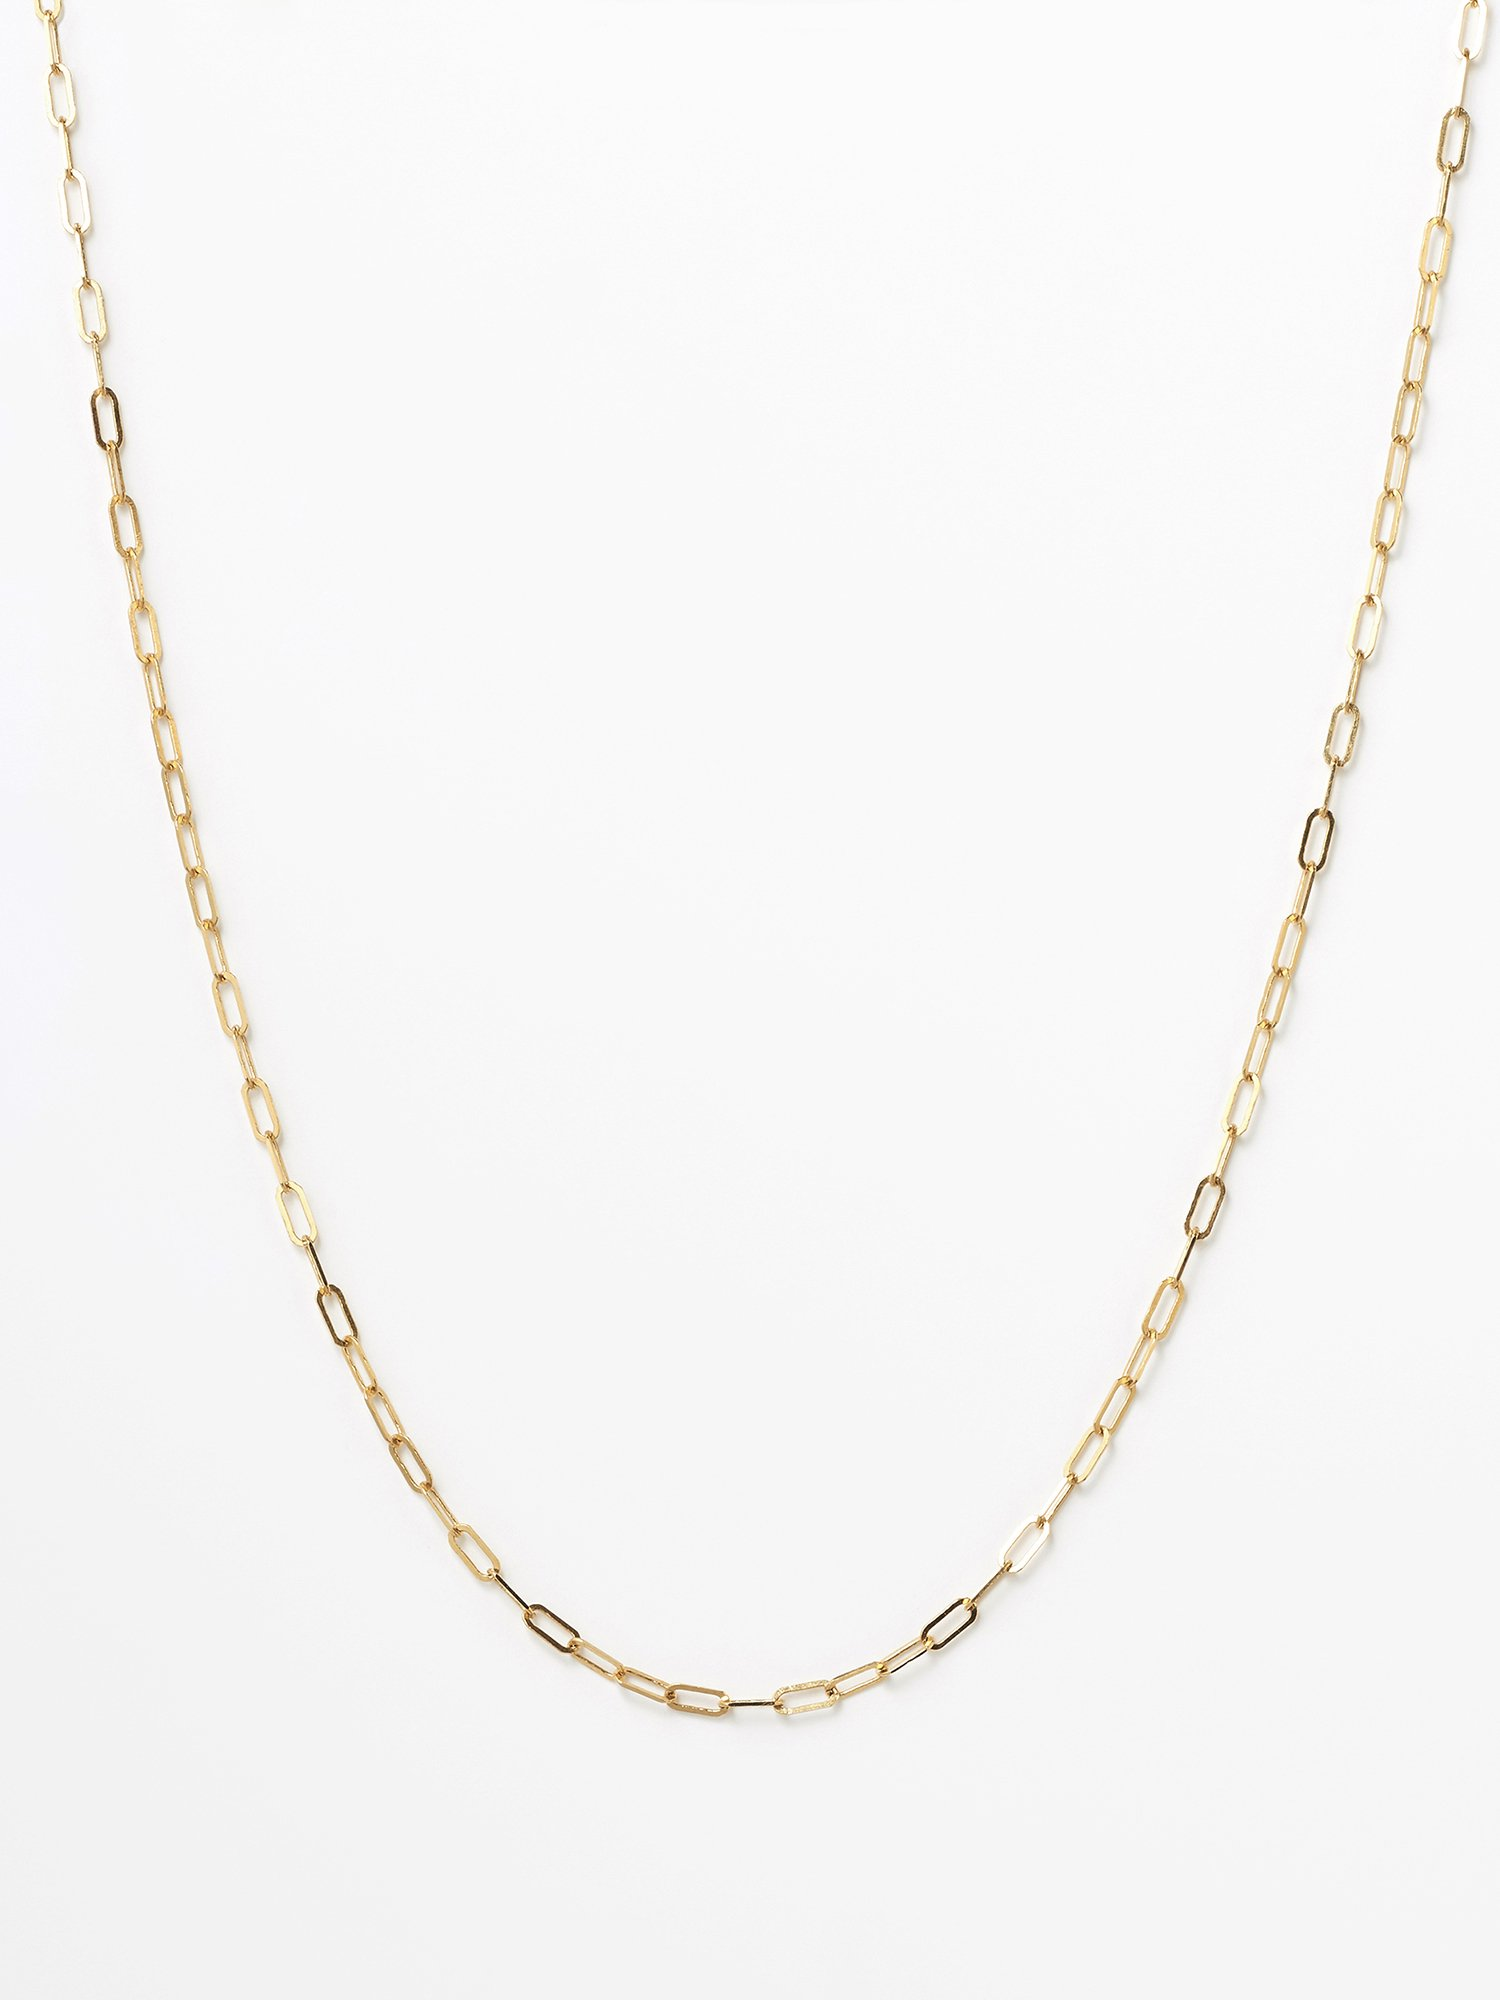 HELIOS / Helios chain necklace / 440mm